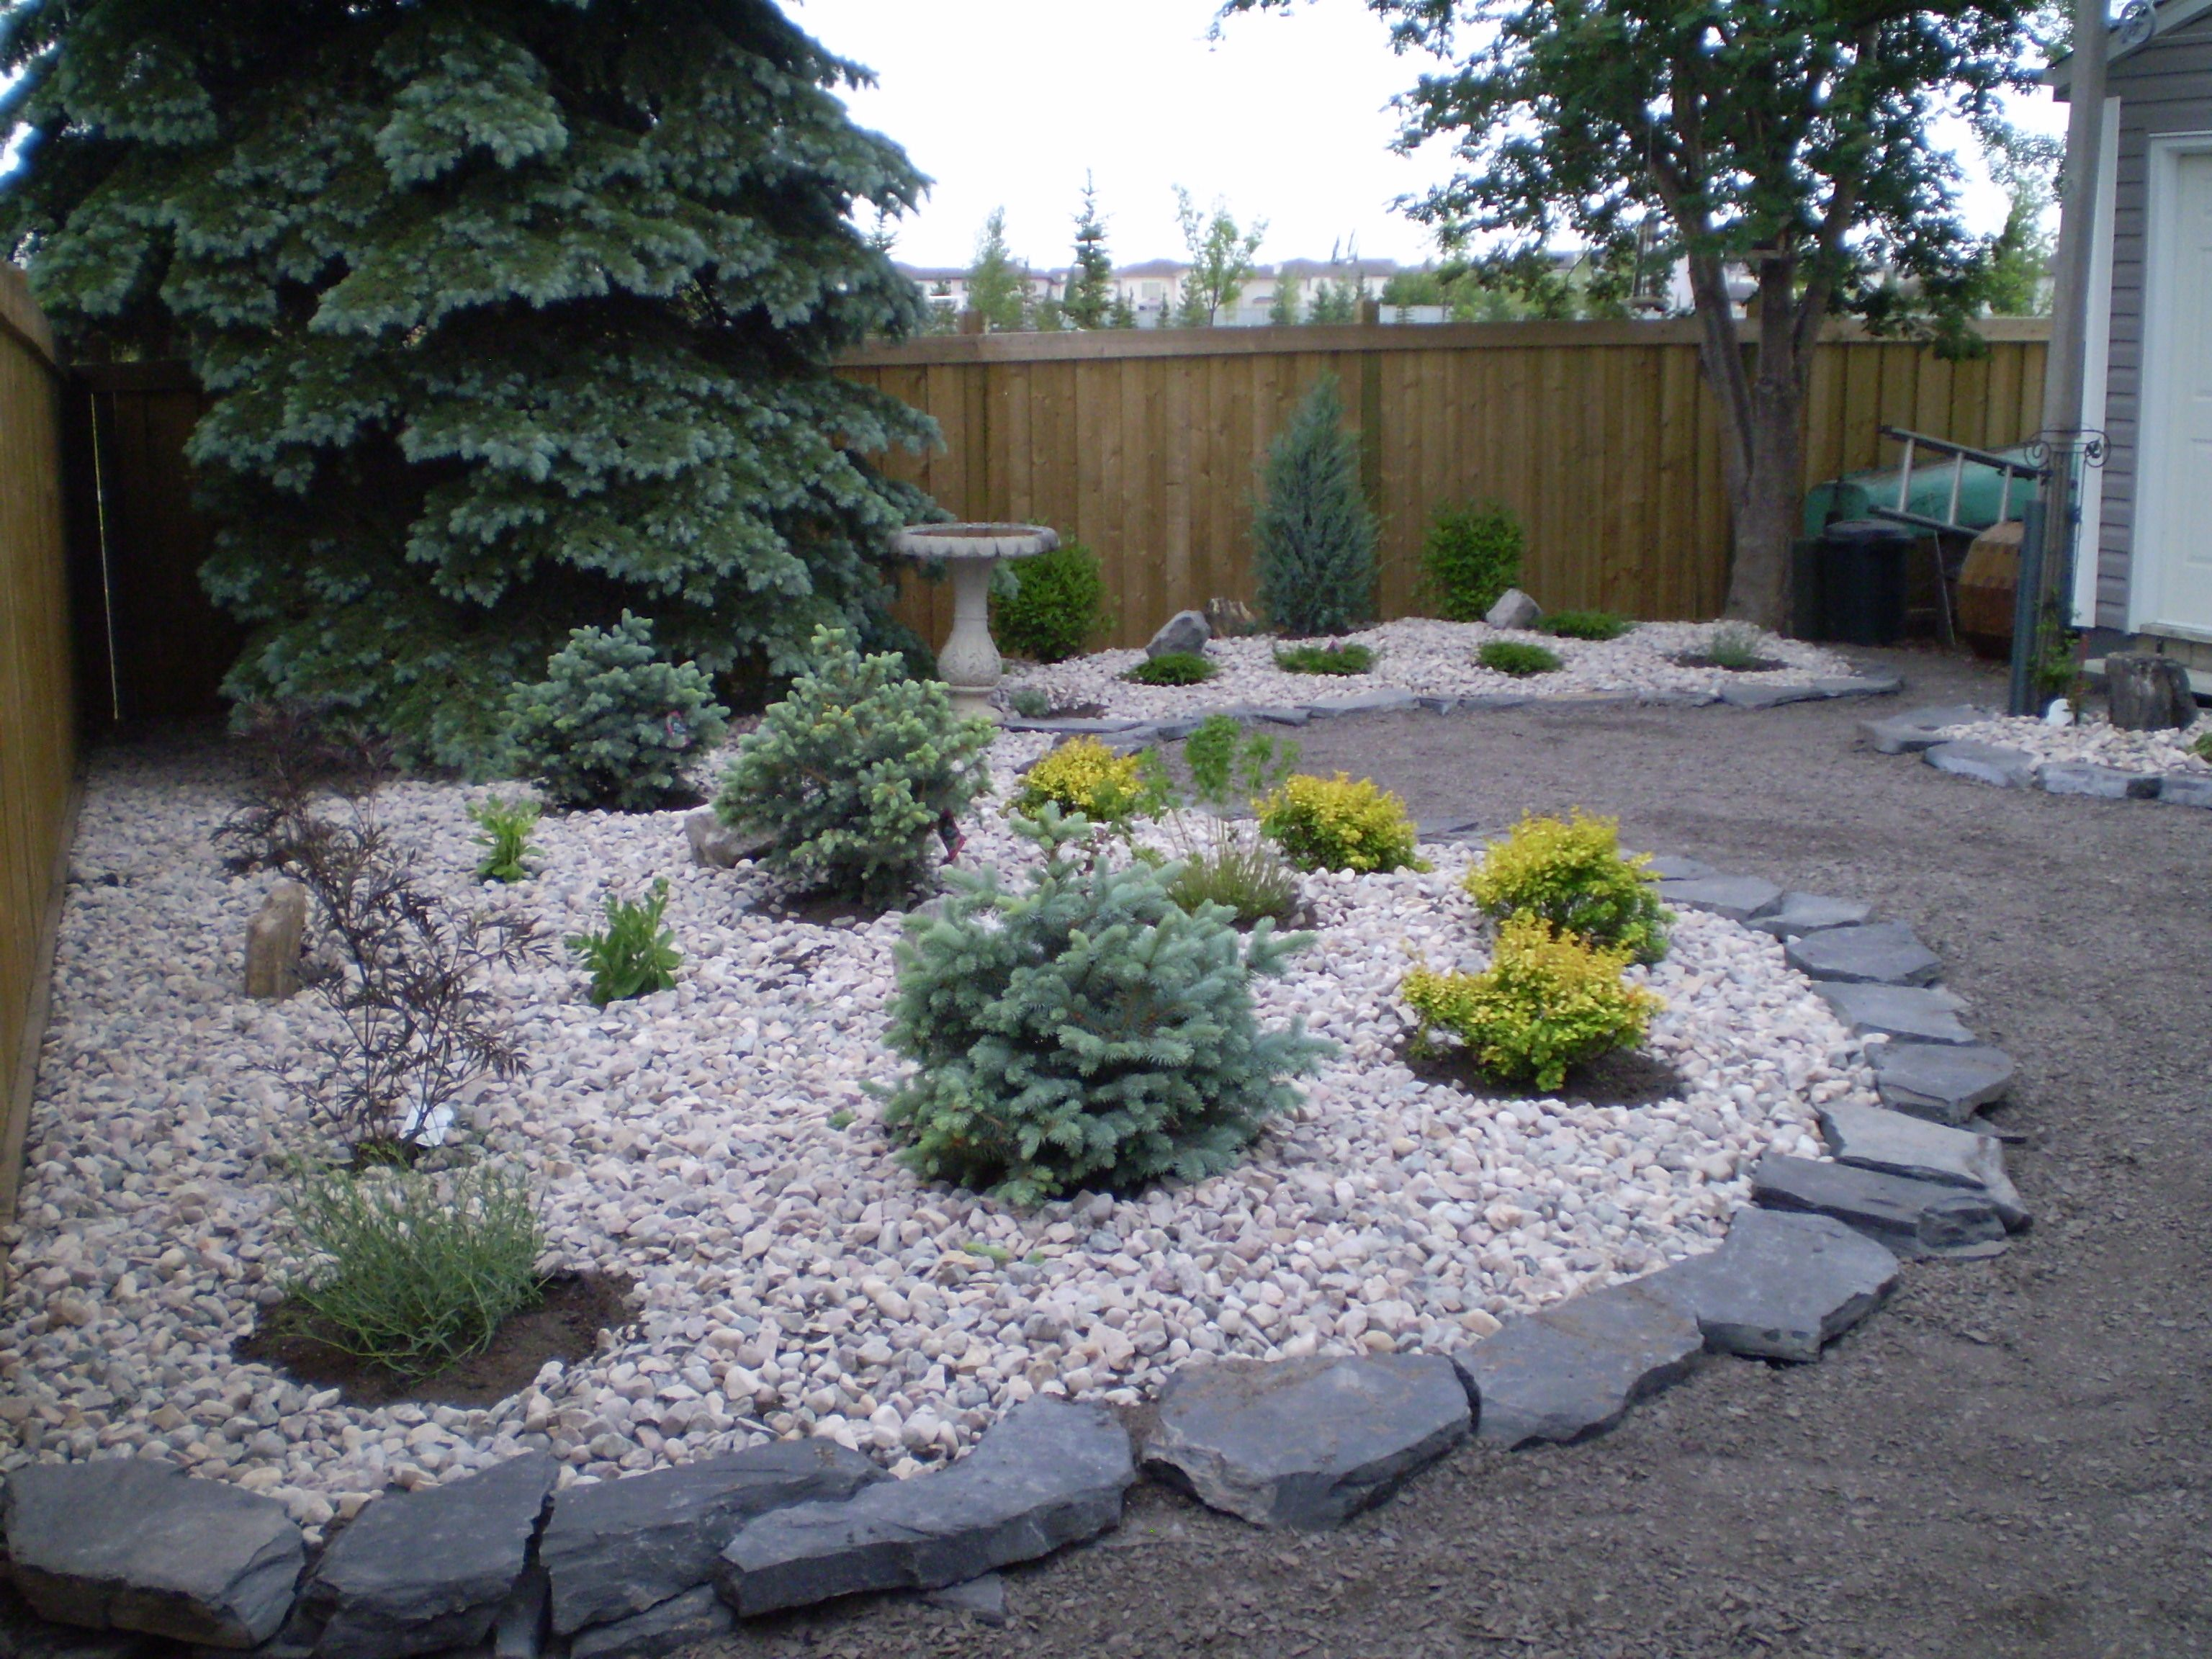 Ideas For Low Maintenance Garden low maintenance garden design ideas australia Low Maintenance Landscaping Xeriscaping